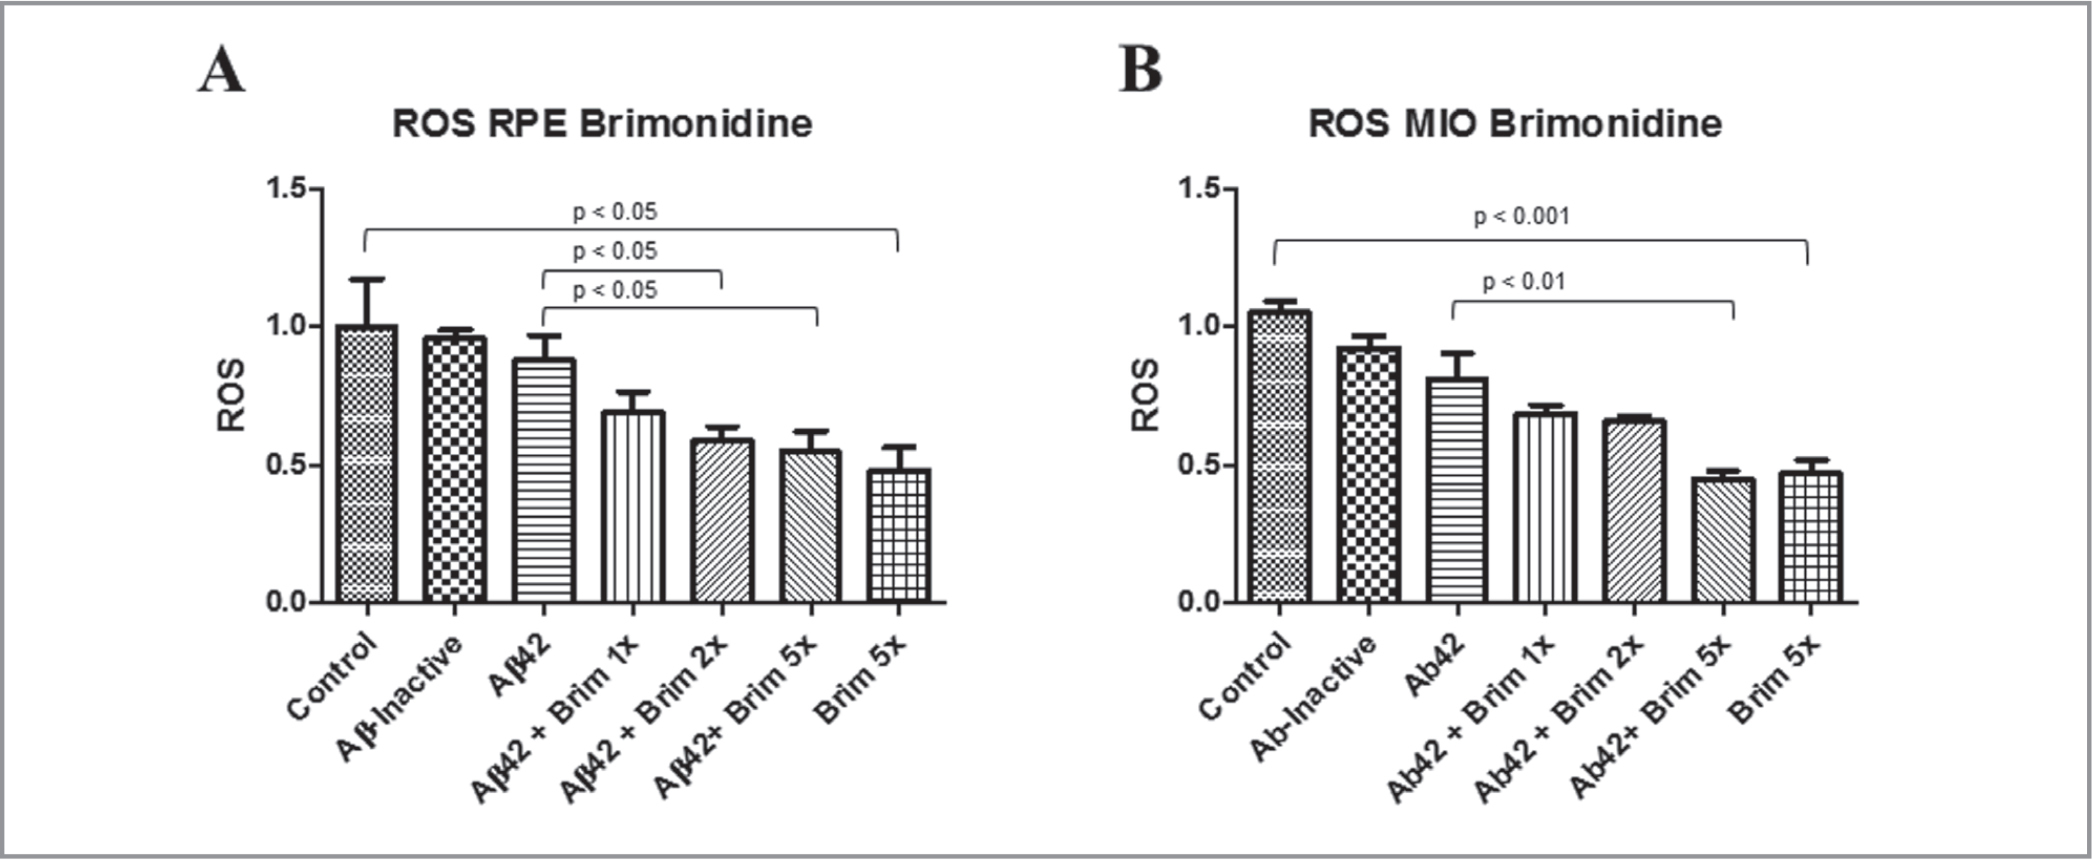 Reactive oxygen species (ROS) production. (A) Adult human retinal pigment epithelial (RPE) cells after pretreatment with 1×, 2×, and 5× concentrations of brimonidine and exposure to amyloid-beta 1–42 (Aβ42) 10μM. (B) Müller (MIO) cells after pretreatment with 1×, 2×, and 5× concentrations of brimonidine and exposure to Aβ42 10μM. Data are normalized to set control (untreated) samples at 100% of fluorescence signal for comparison.